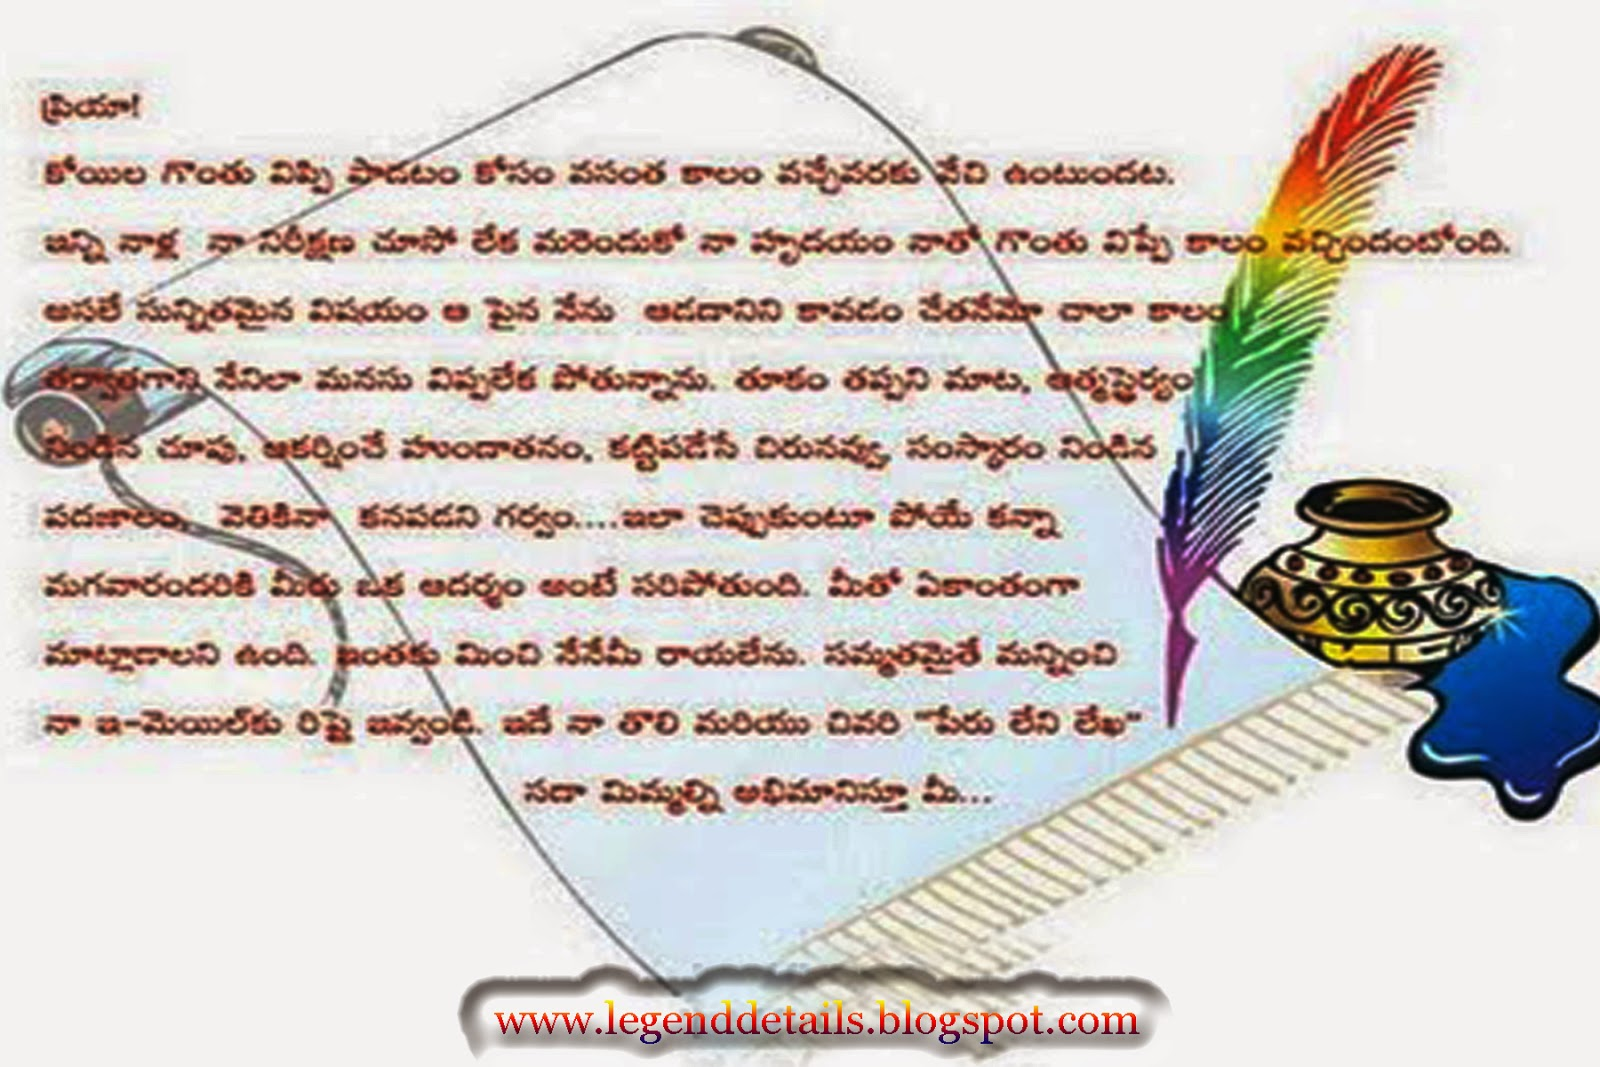 Deep Love Quotes For Her Pdf : Deep Love Letter In Telugu Deep Love Quotes In Telugu Ways to ...